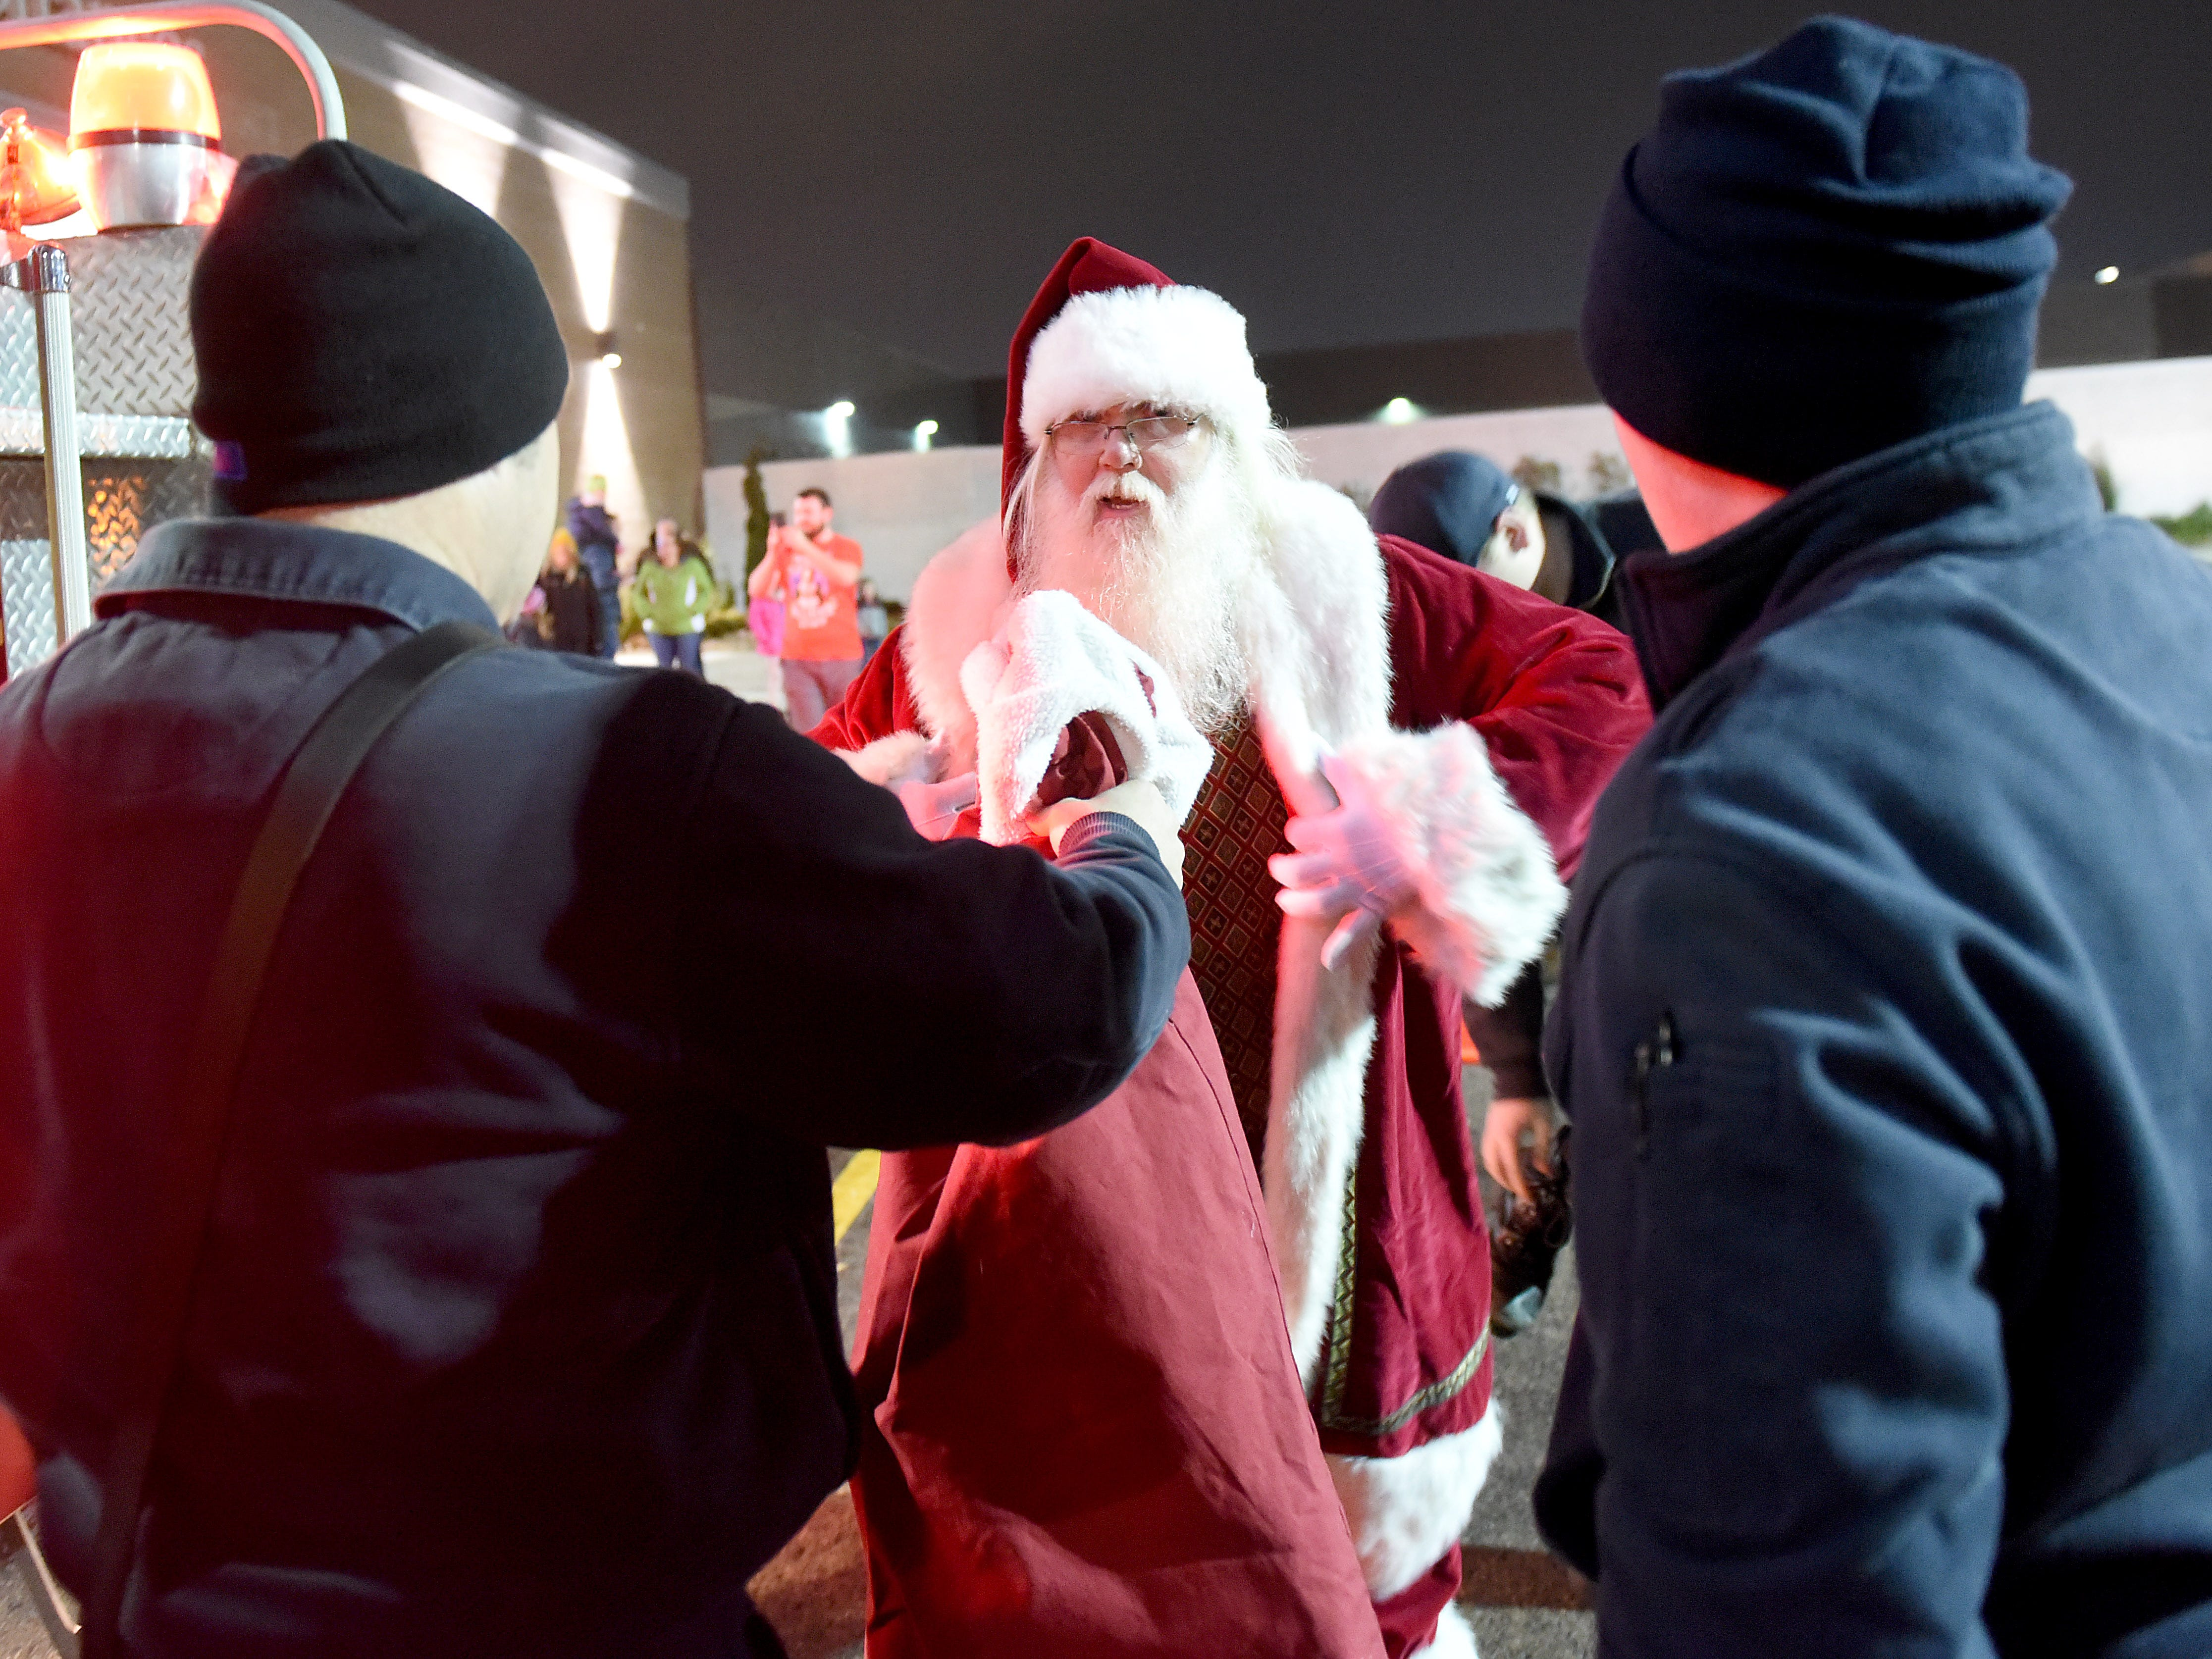 Santa Claus arrived at the Indian Mound Mall on Friday, Nov. 16, 2018. Families enjoyed performances from the Newark High School choir and Newark Catholic cheerleaders, face painting, snacks and the arrival of Santa with help from the Heath Fire Department.